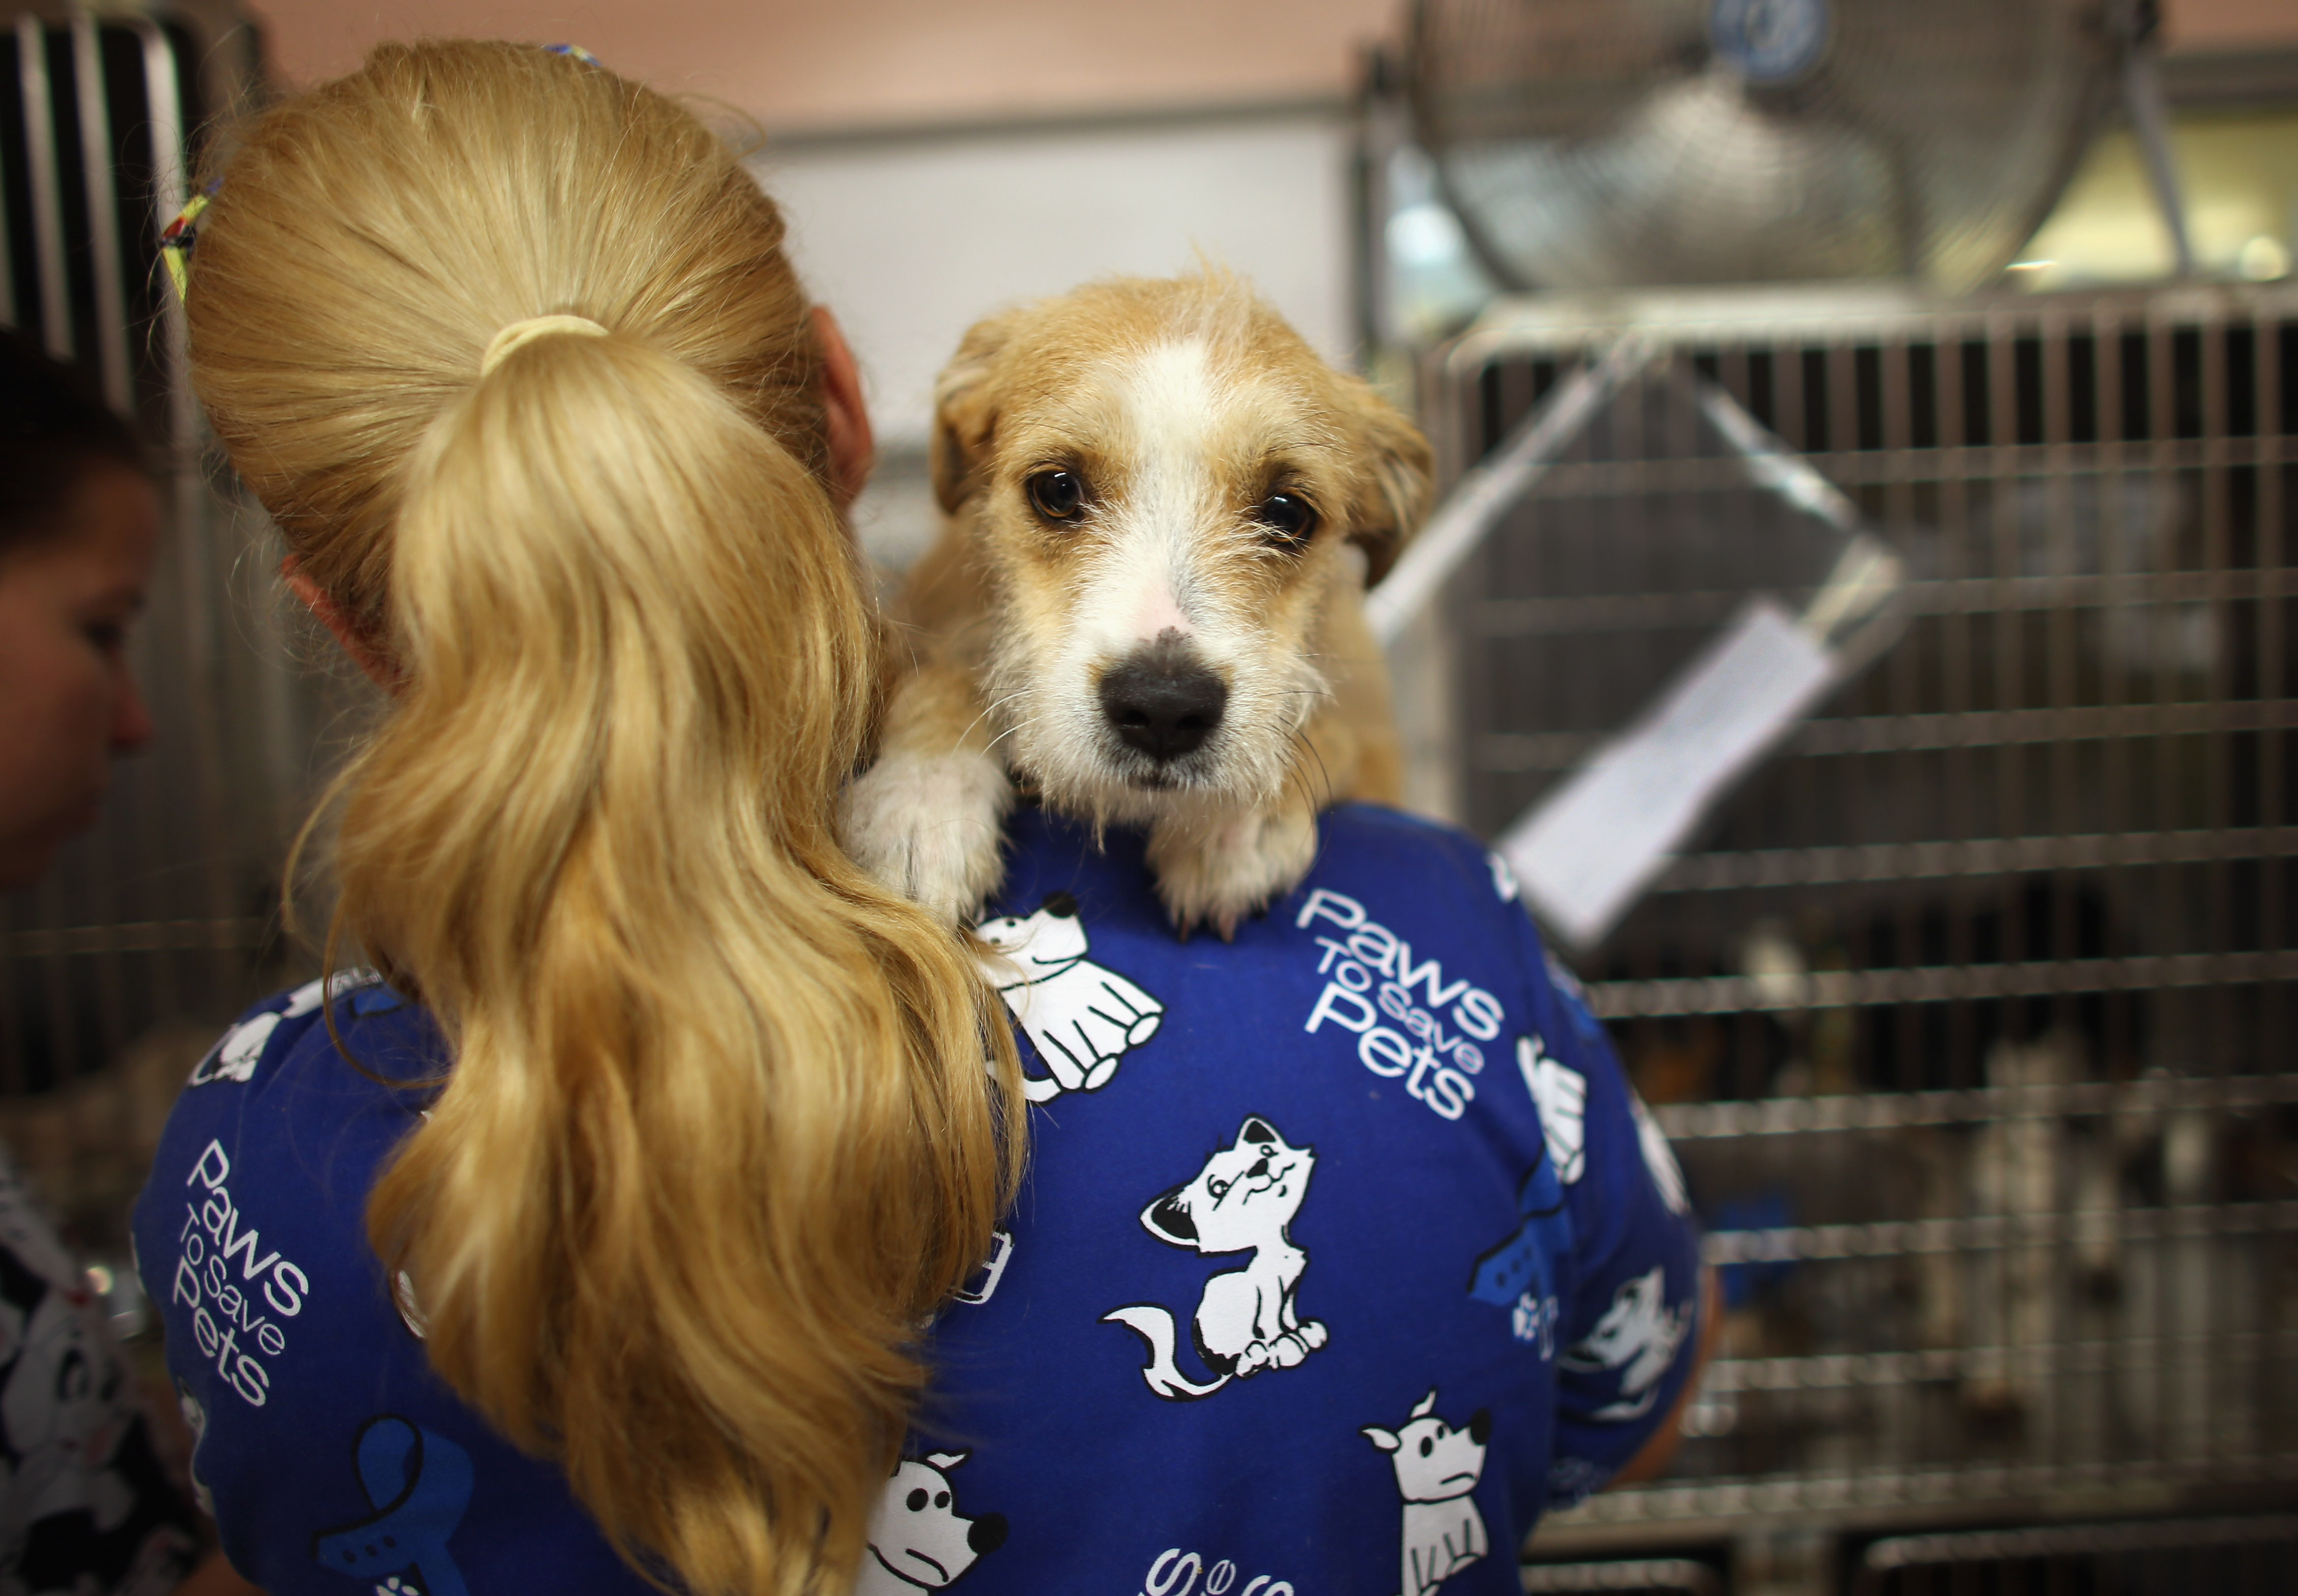 A veterinarian volunteer cares for a rescued dog  (Photo by Joe Raedle/Getty Images)